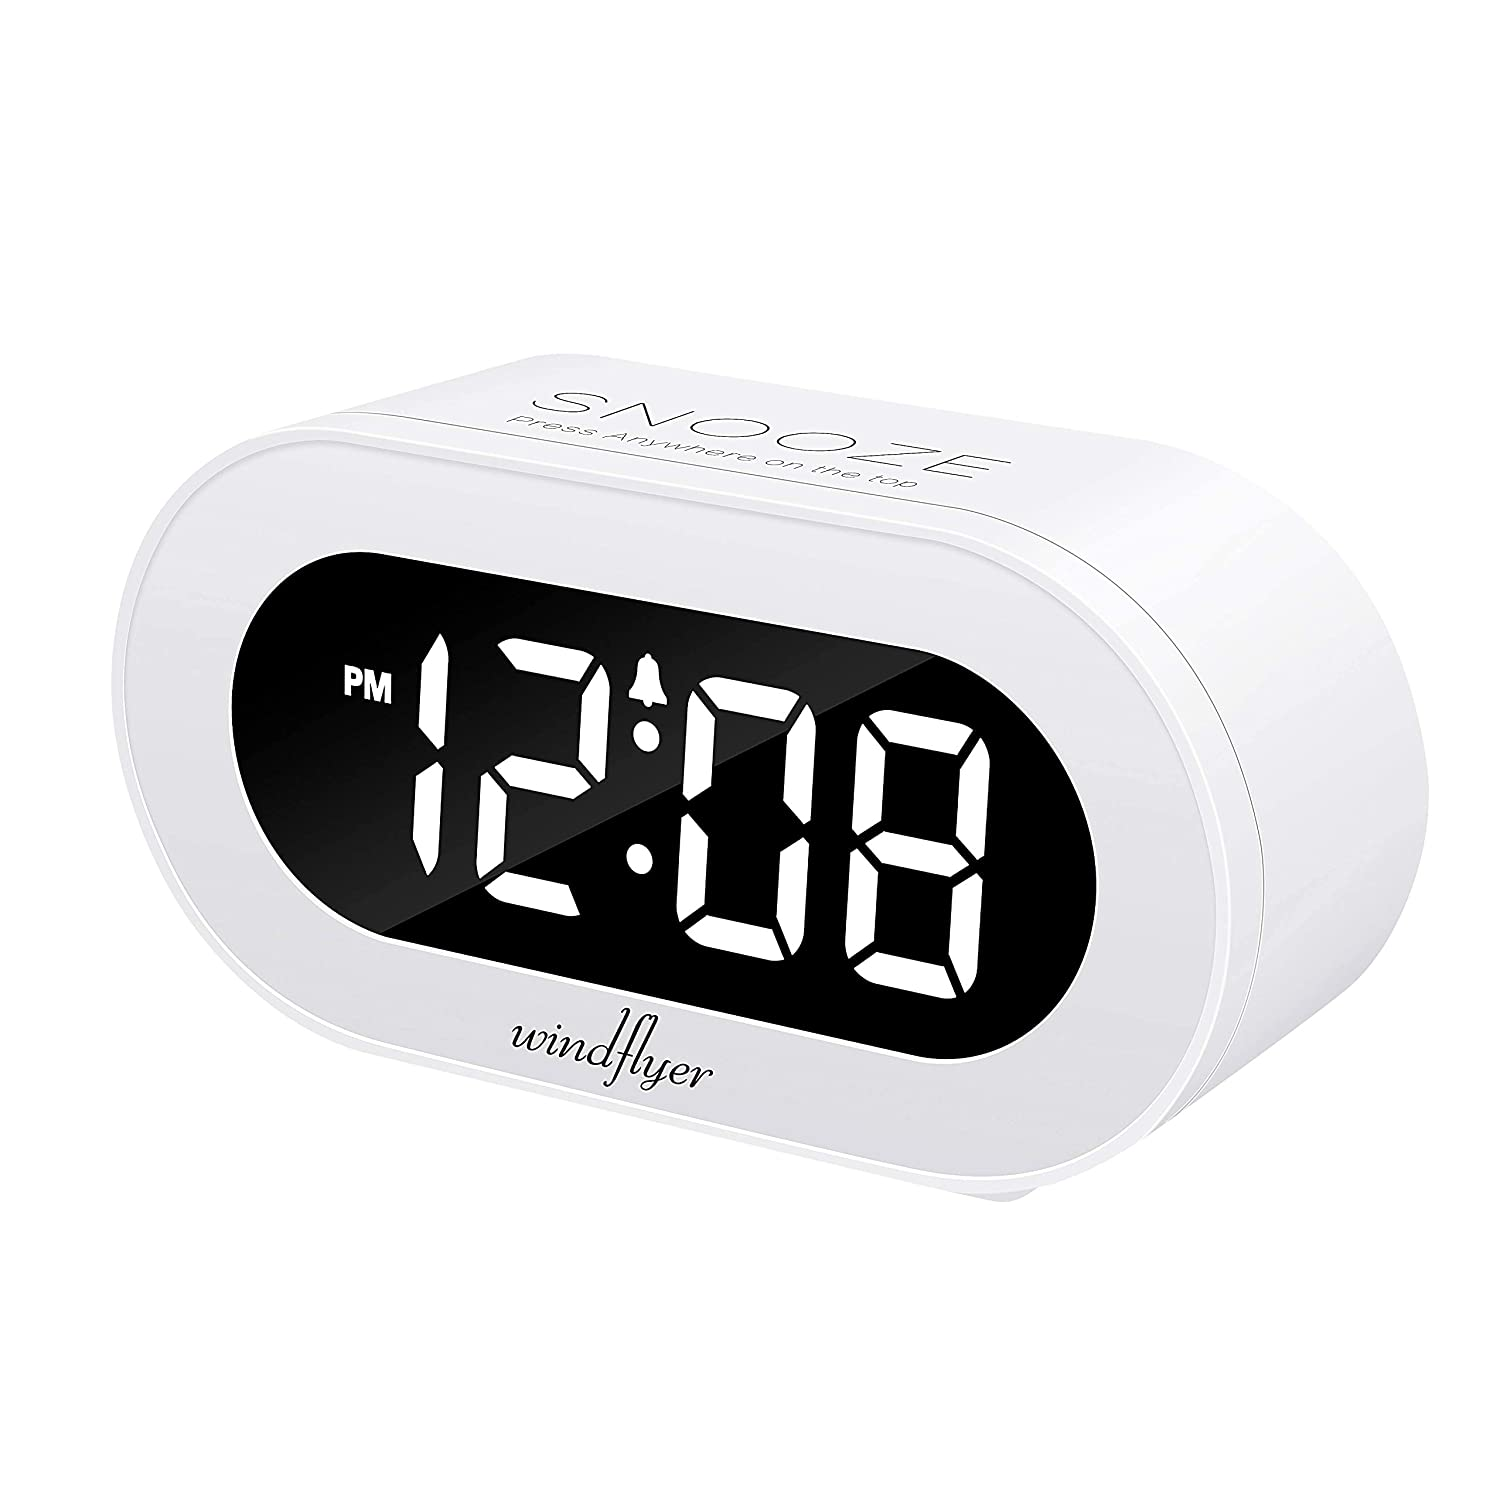 Windflyer Small LED Digital Alarm Clock Snooze, Simple to Operate, Full Range Brightness Dimmer, Adjustable Alarm Volume, Outlet Powered Compact Clock Bedrooms, Bedside, Desk, Shelf(White)